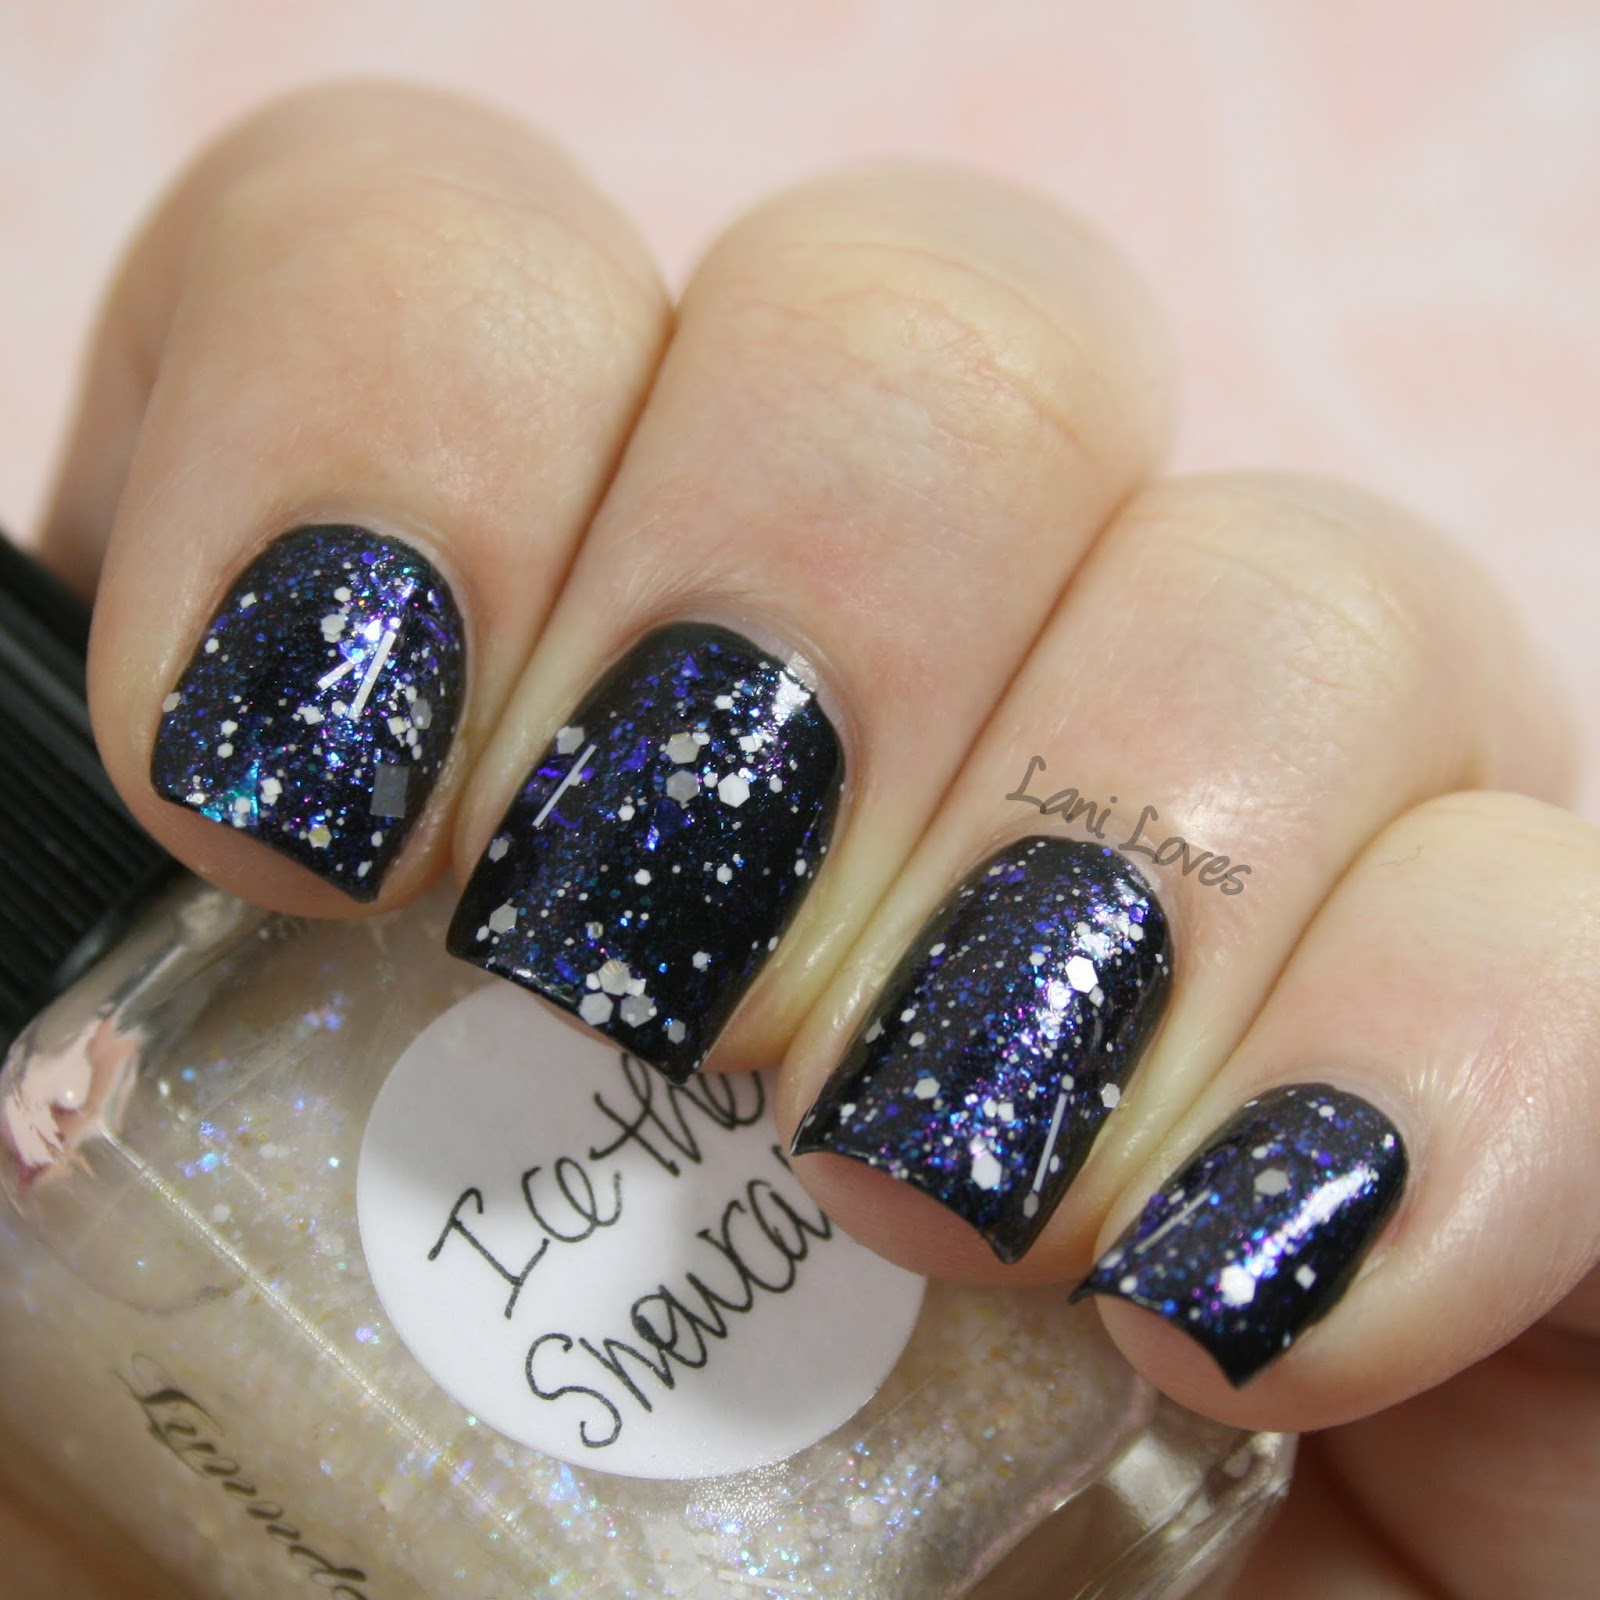 Lynnderella Ice the Snowcake nail polish swatch